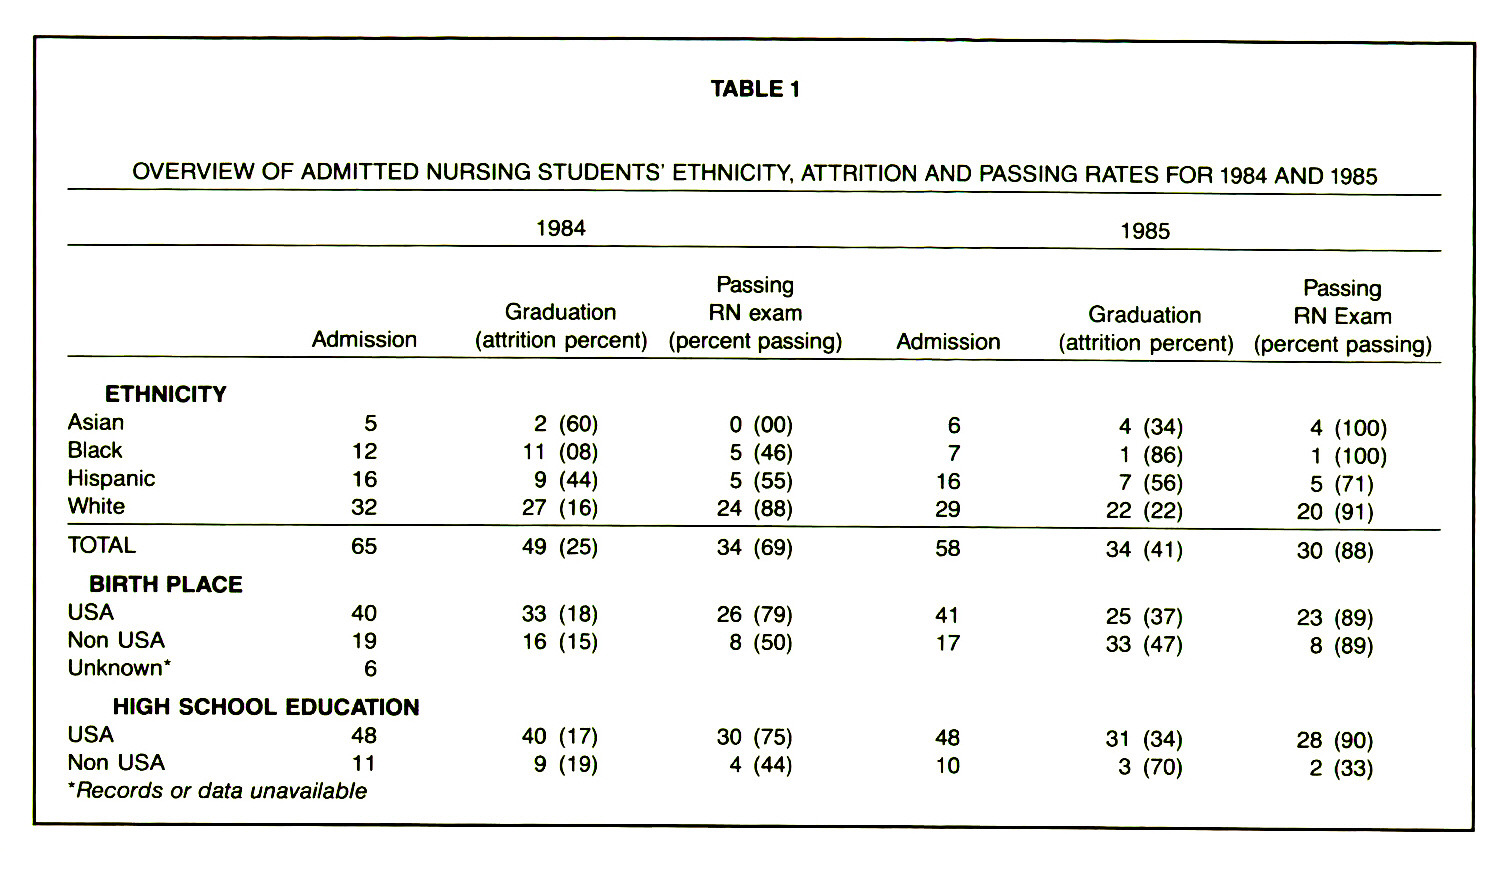 TABLE 1OVERVIEW OF ADMITTED NURSING STUDENTS' ETHNICITY, ATTRITION AND PASSING RATES FOR 1984 AND 1985